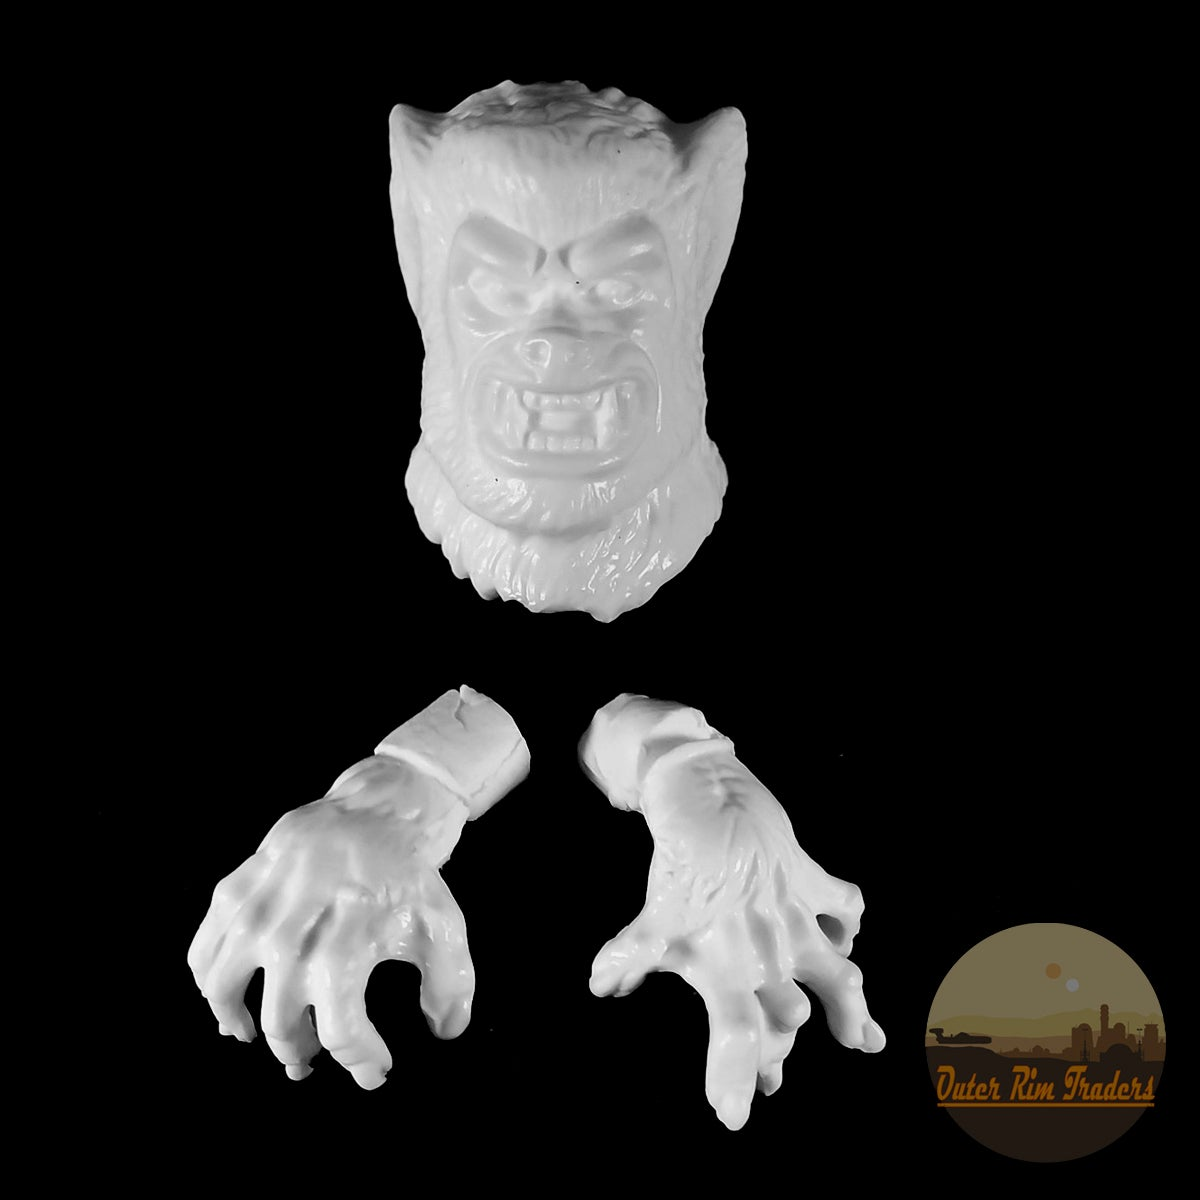 Image of Wolfman #1 with hands